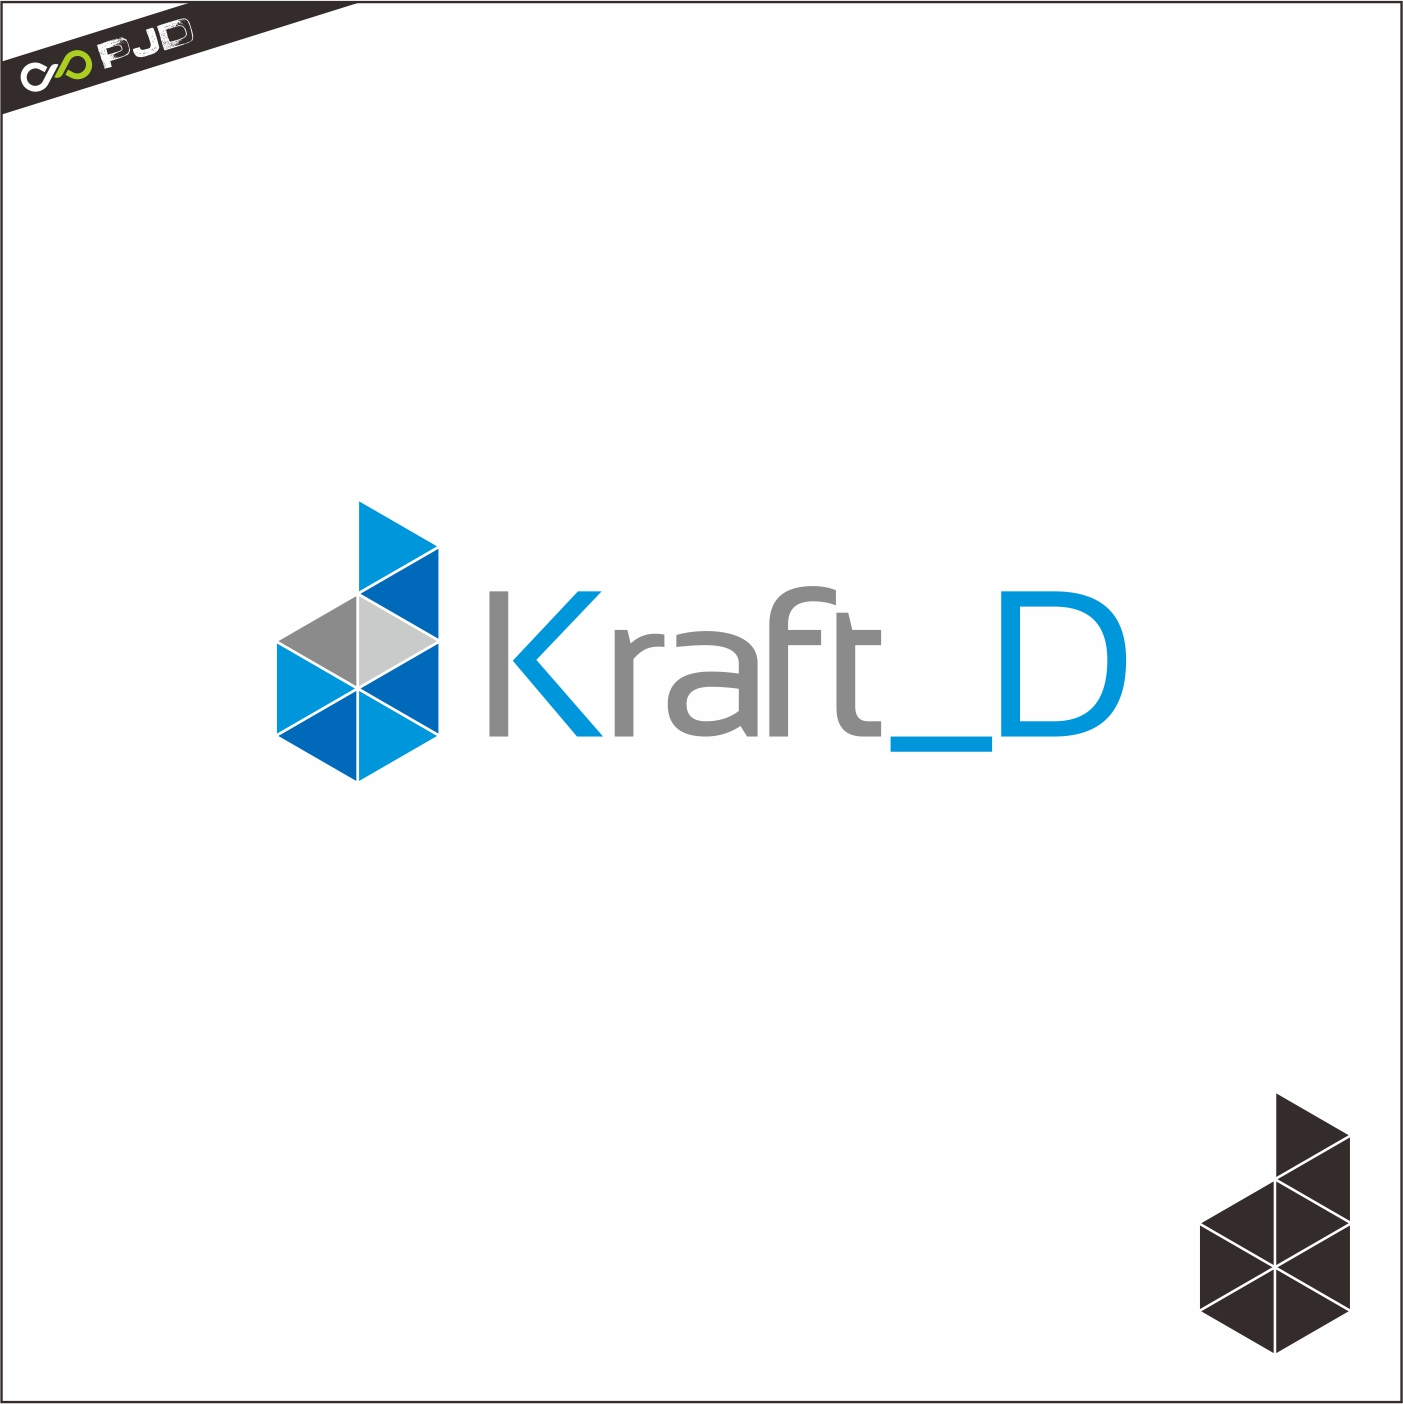 Logo Design by PJD - Entry No. 353 in the Logo Design Contest Unique Logo Design Wanted for Kraft D Inc.